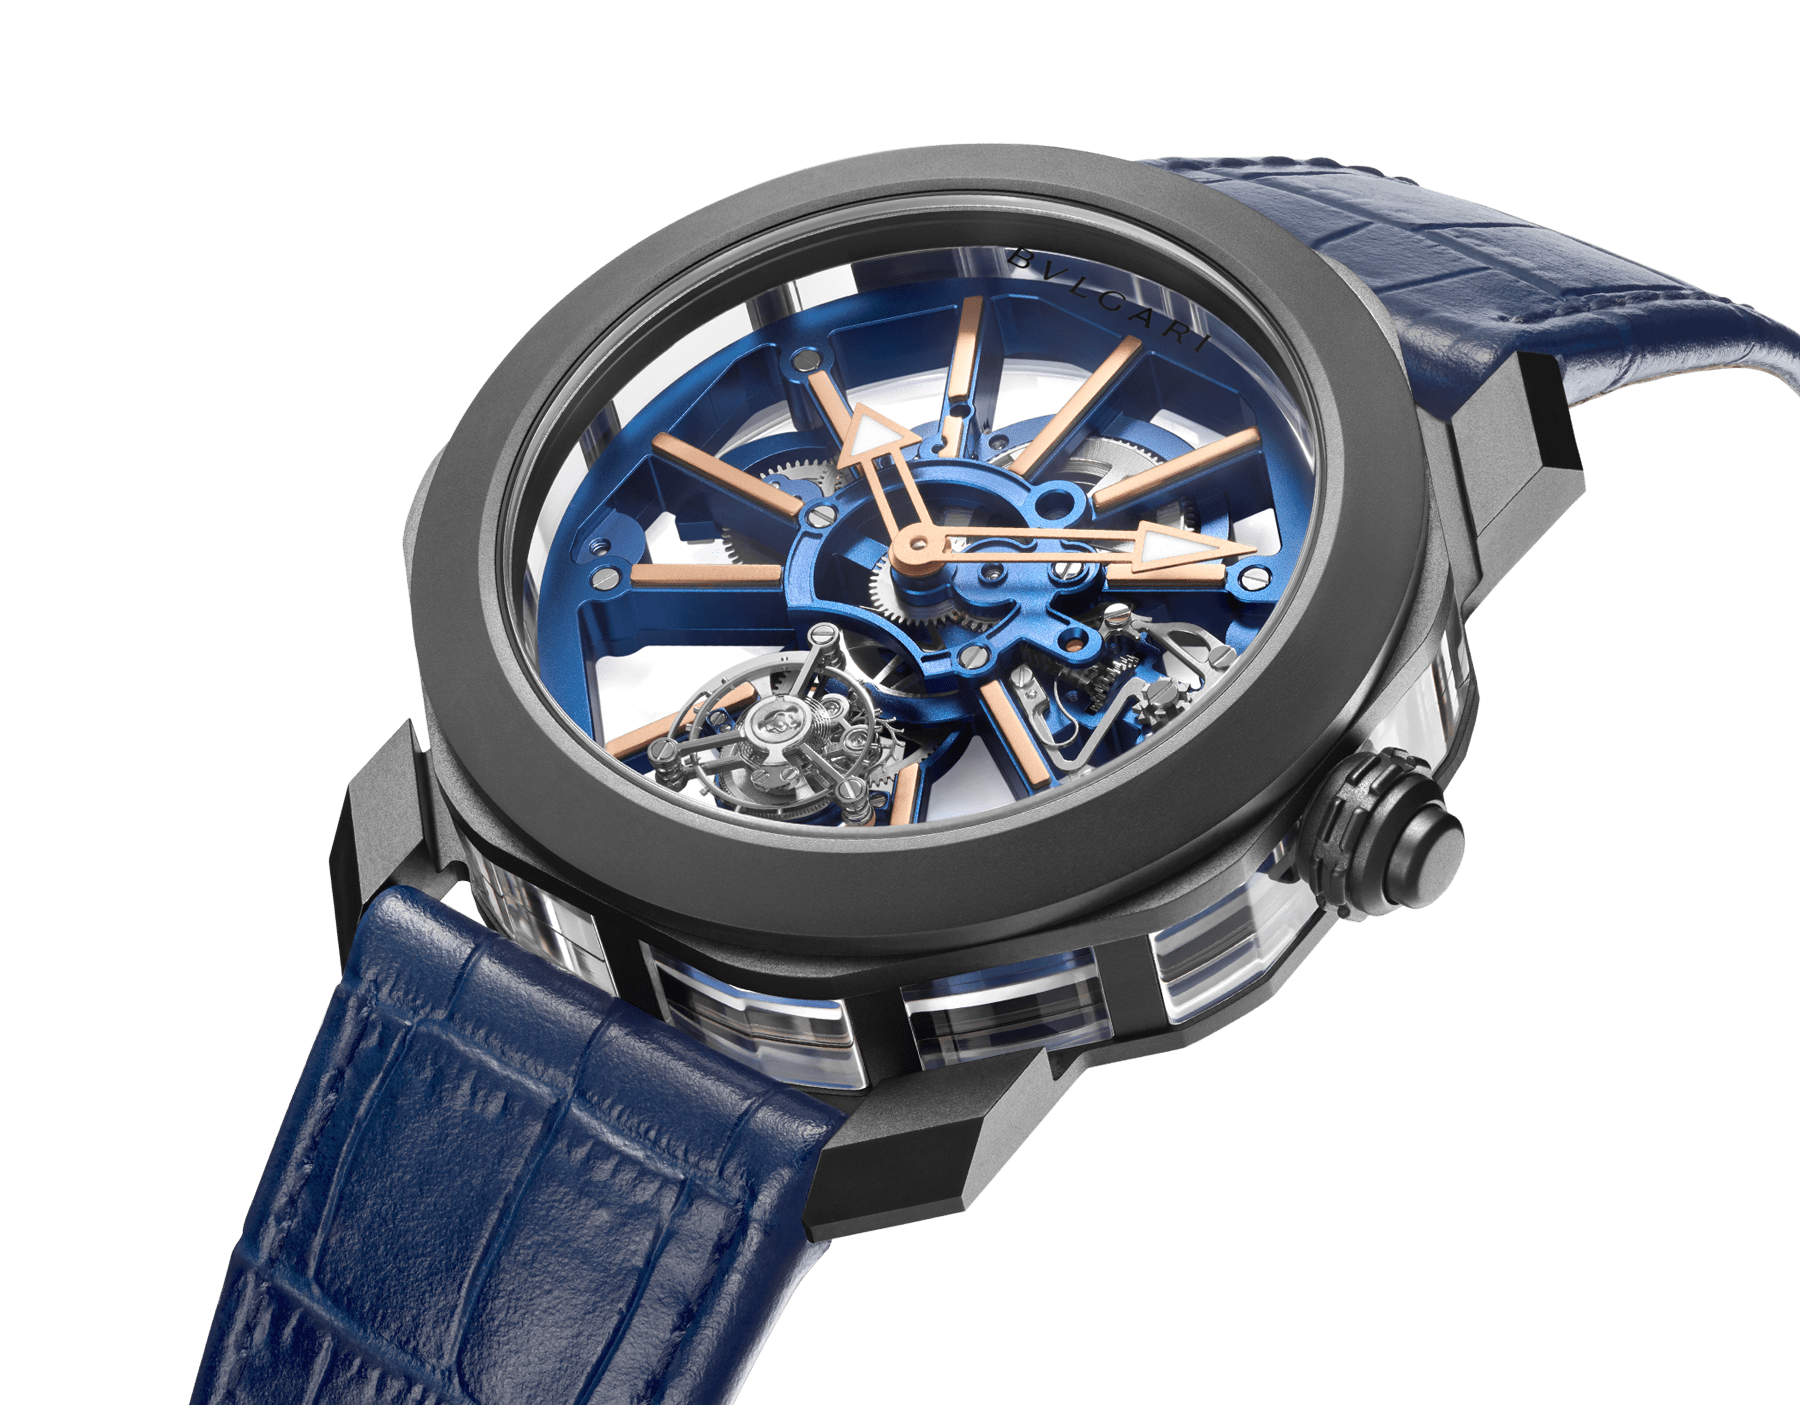 Octo Roma Tourbillon Sapphire watch with mechanical manufacture movement, flying tourbillon, manual winding, titanium case with black Diamond Like Carbon treatment, sapphire middle case, blue PVD calibre decorated with 18 kt rose gold indexes on the bridges and blue alligator bracelet 103154 image 2